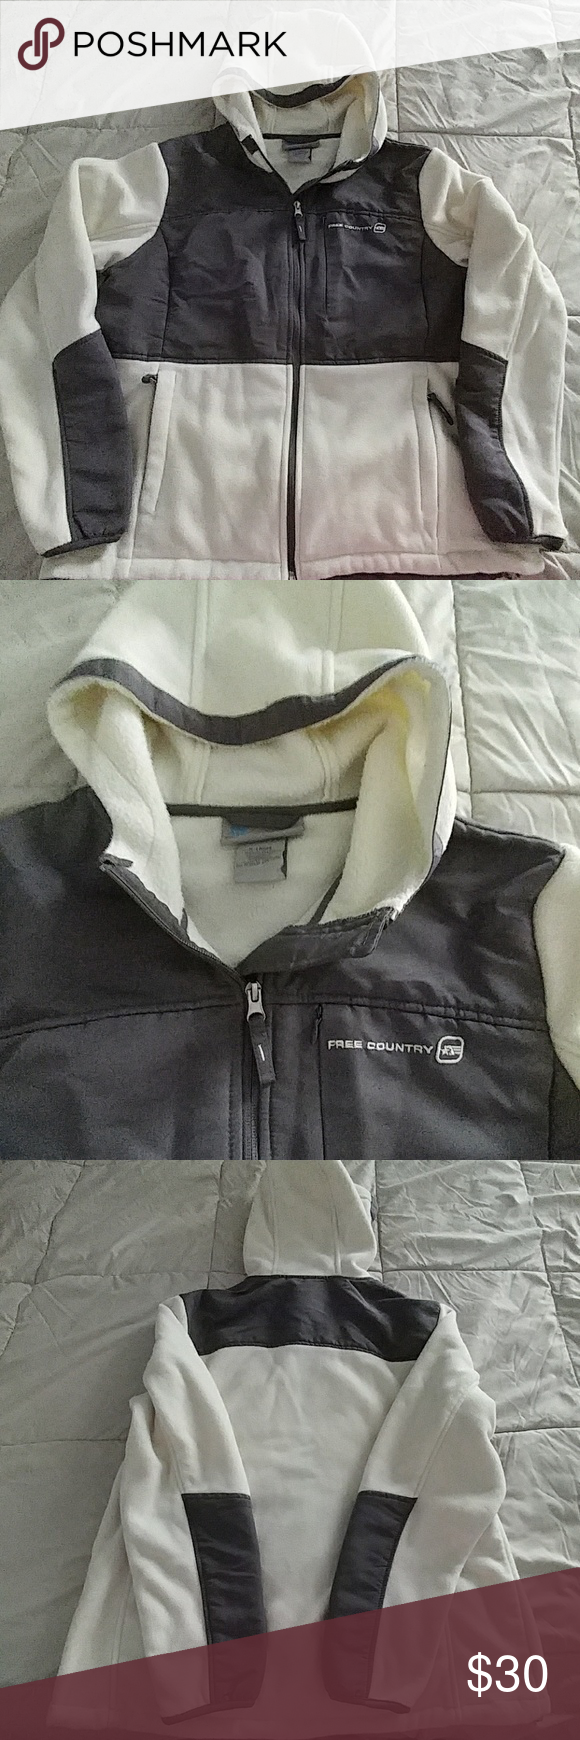 Free country hooded fleece jacket xl comfy conditioning and coats